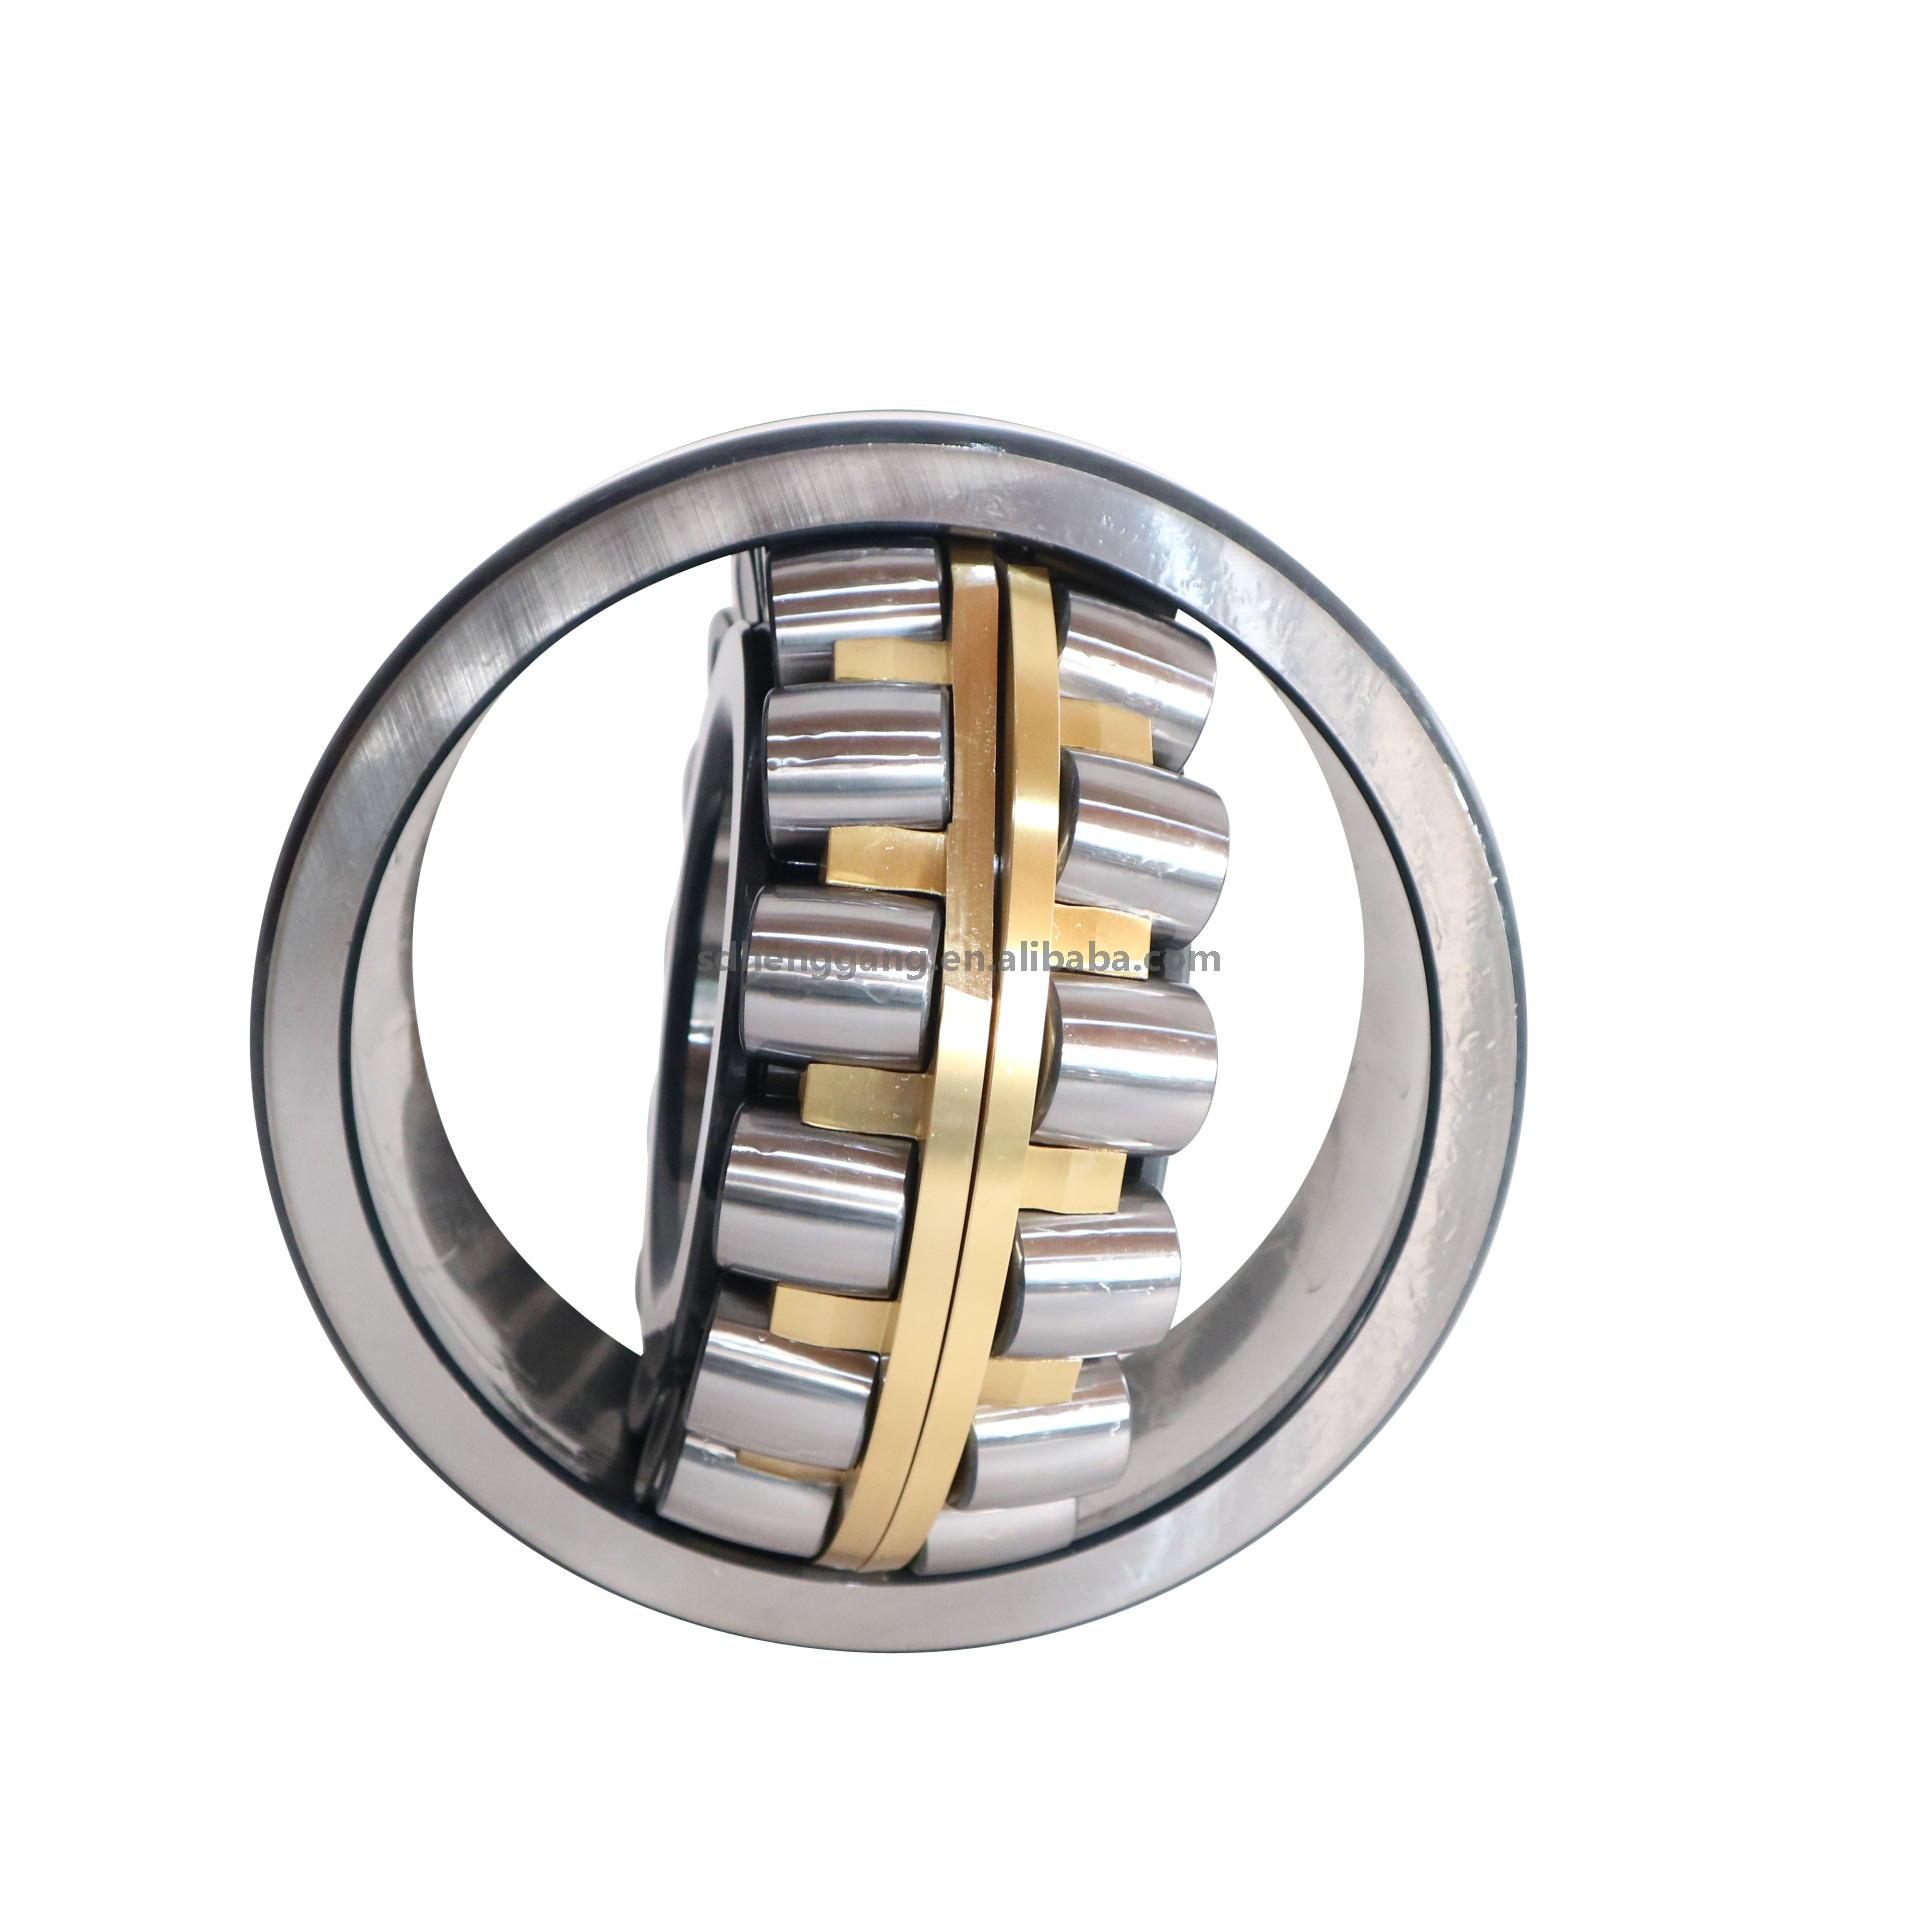 2019 long life 23220MA ball bearing